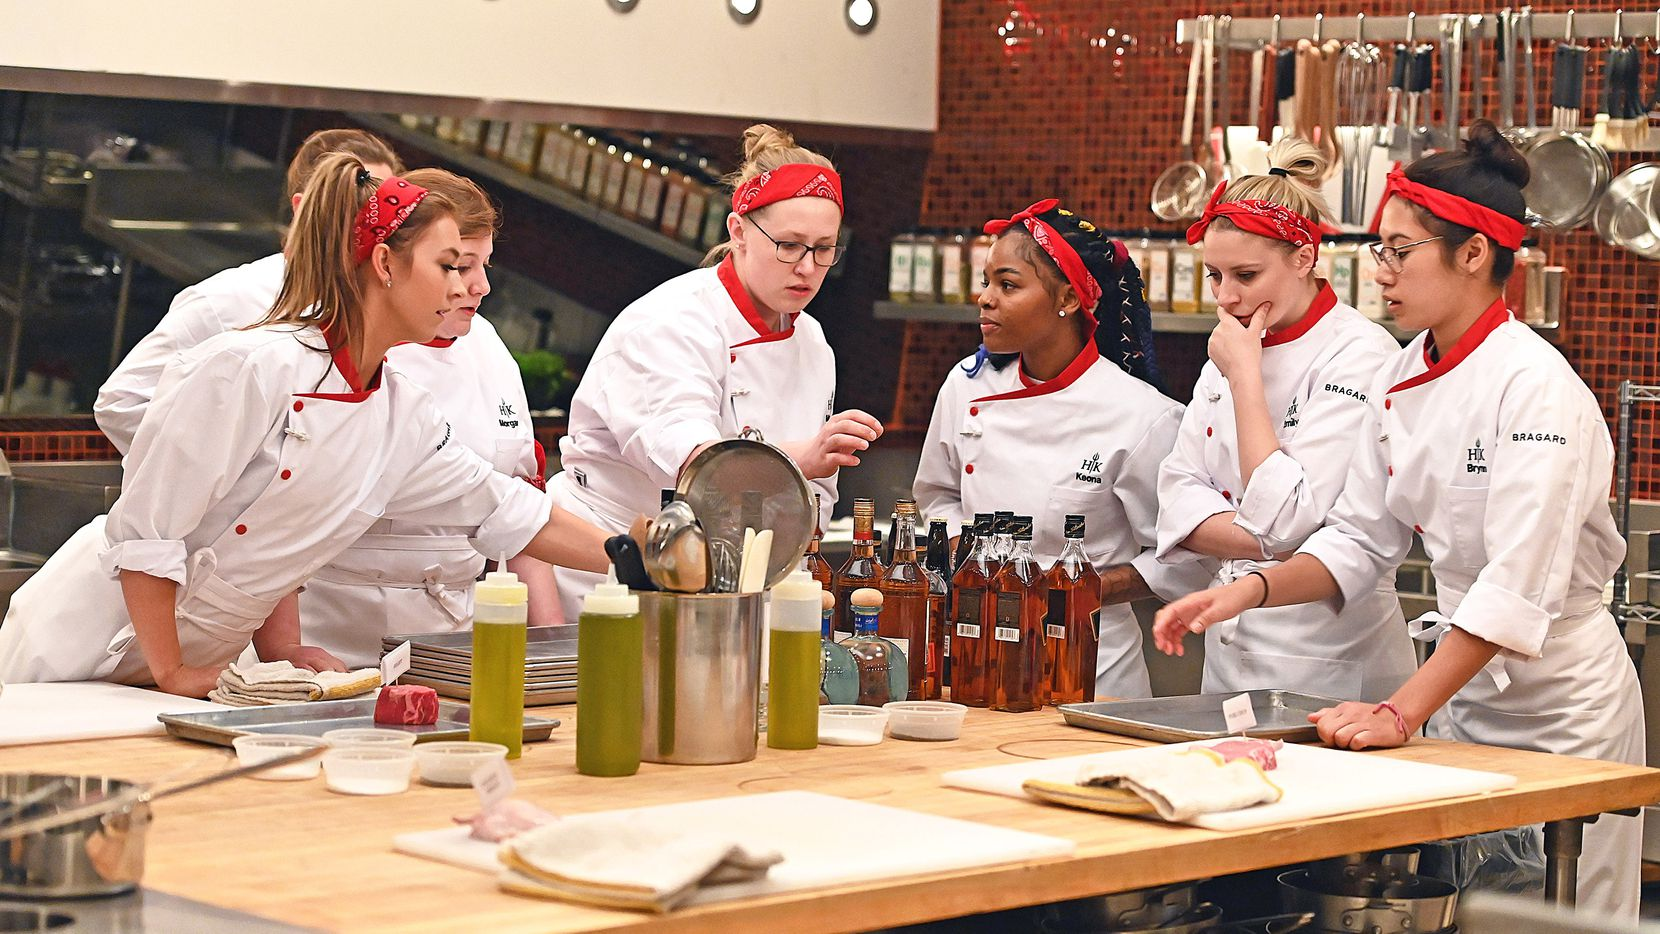 Denton chef Megan Gill, center, is the only Dallas-Fort Worth chef on 'Hell's Kitchen: Young Guns,' which premieres May 31, 2021 on Fox. To prepare for the show, Gill says she practiced cooking steak and seafood.